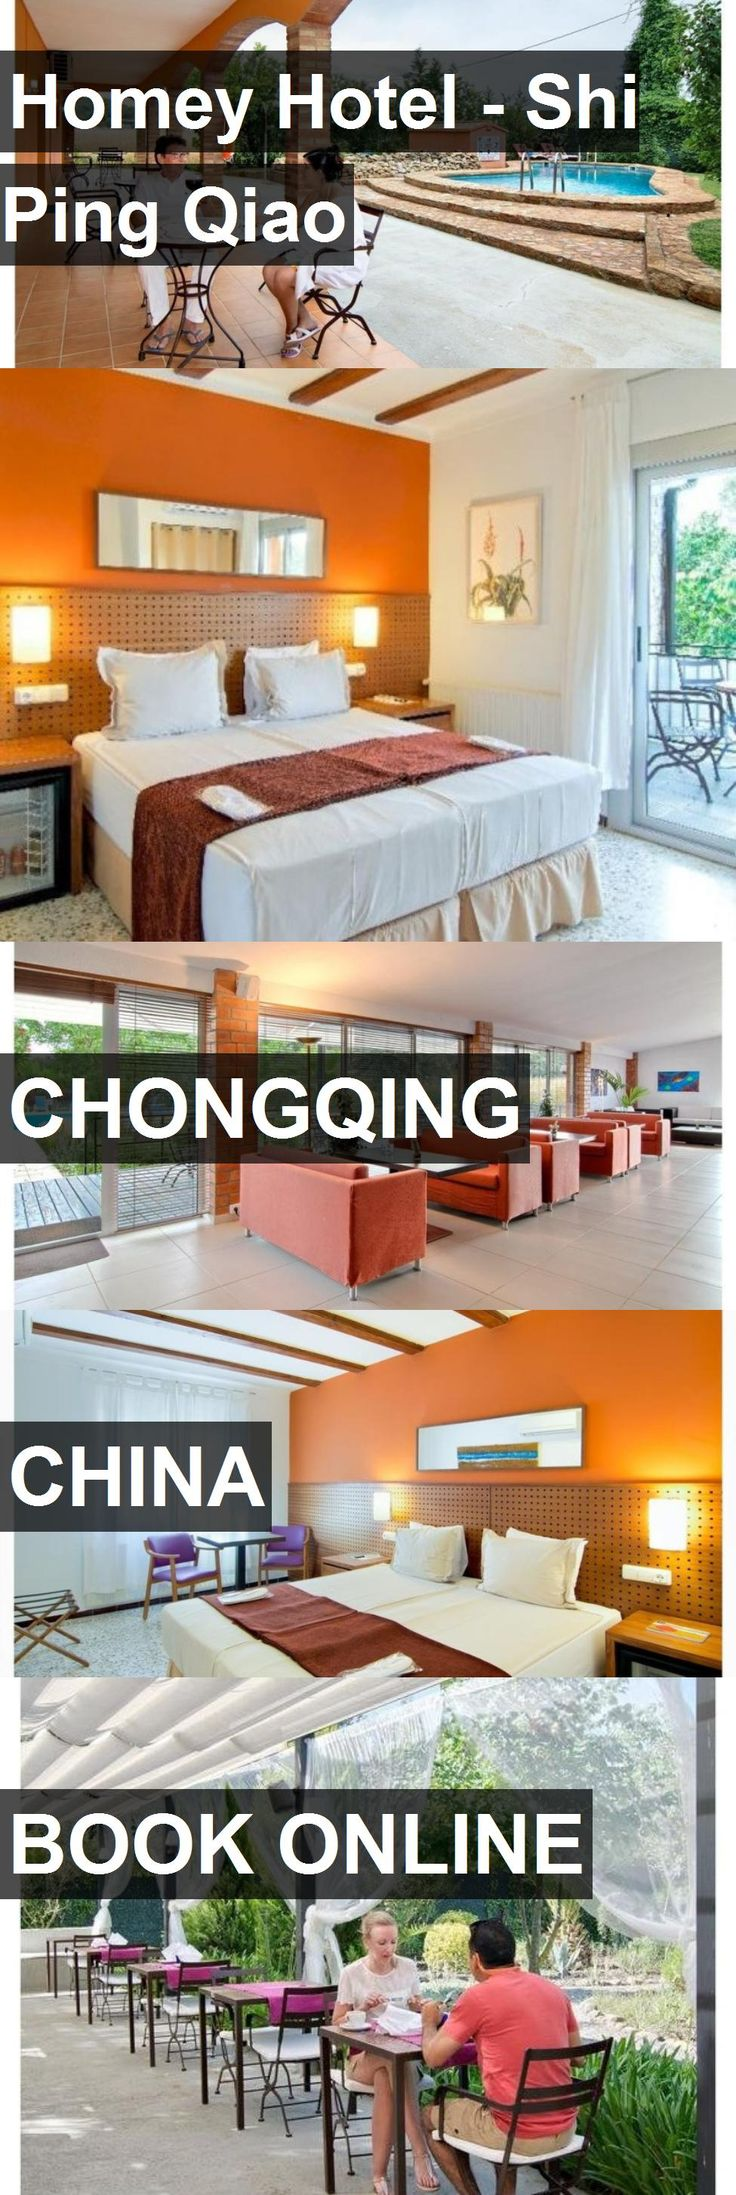 Homey Hotel - Shi Ping Qiao in Chongqing, China. For more information, photos, reviews and best prices please follow the link. #China #Chongqing #travel #vacation #hotel